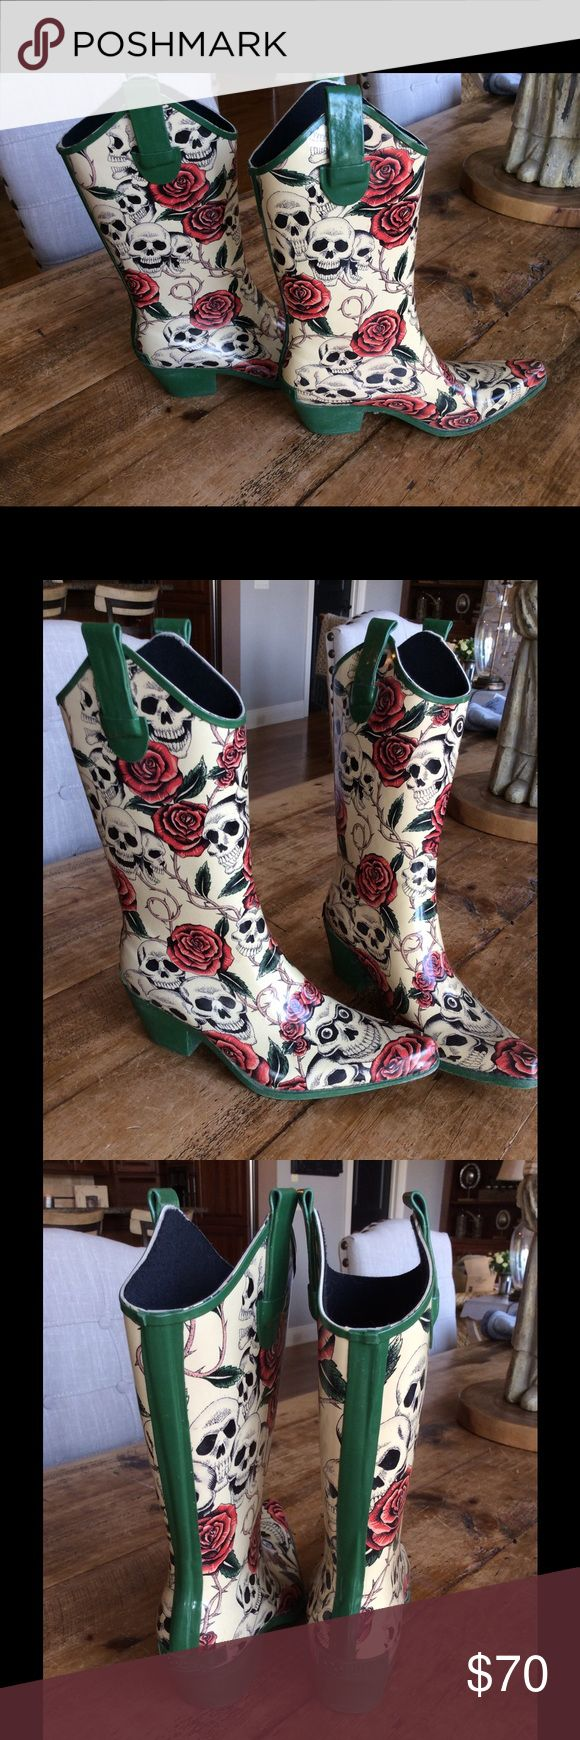 Corkys skull and roses cowboy rain boots sz 8 Great condition boots. Only worn once to steeplechase (a horse race similar to KY derby). Got tons of compliments on them. Sz 8 corkys Shoes Winter & Rain Boots